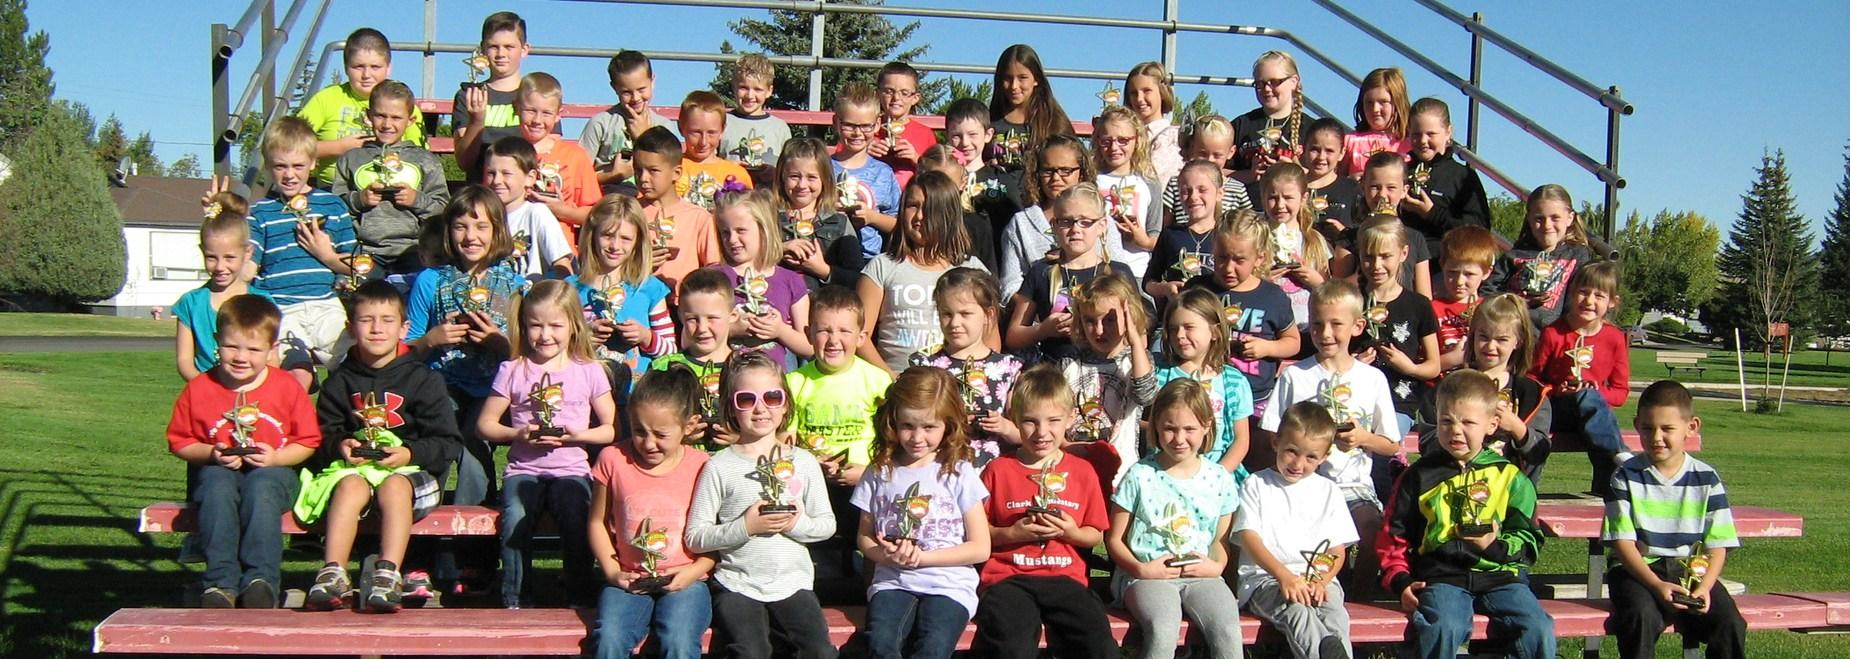 students ar Clark Elementary who read over 30 books during the summer